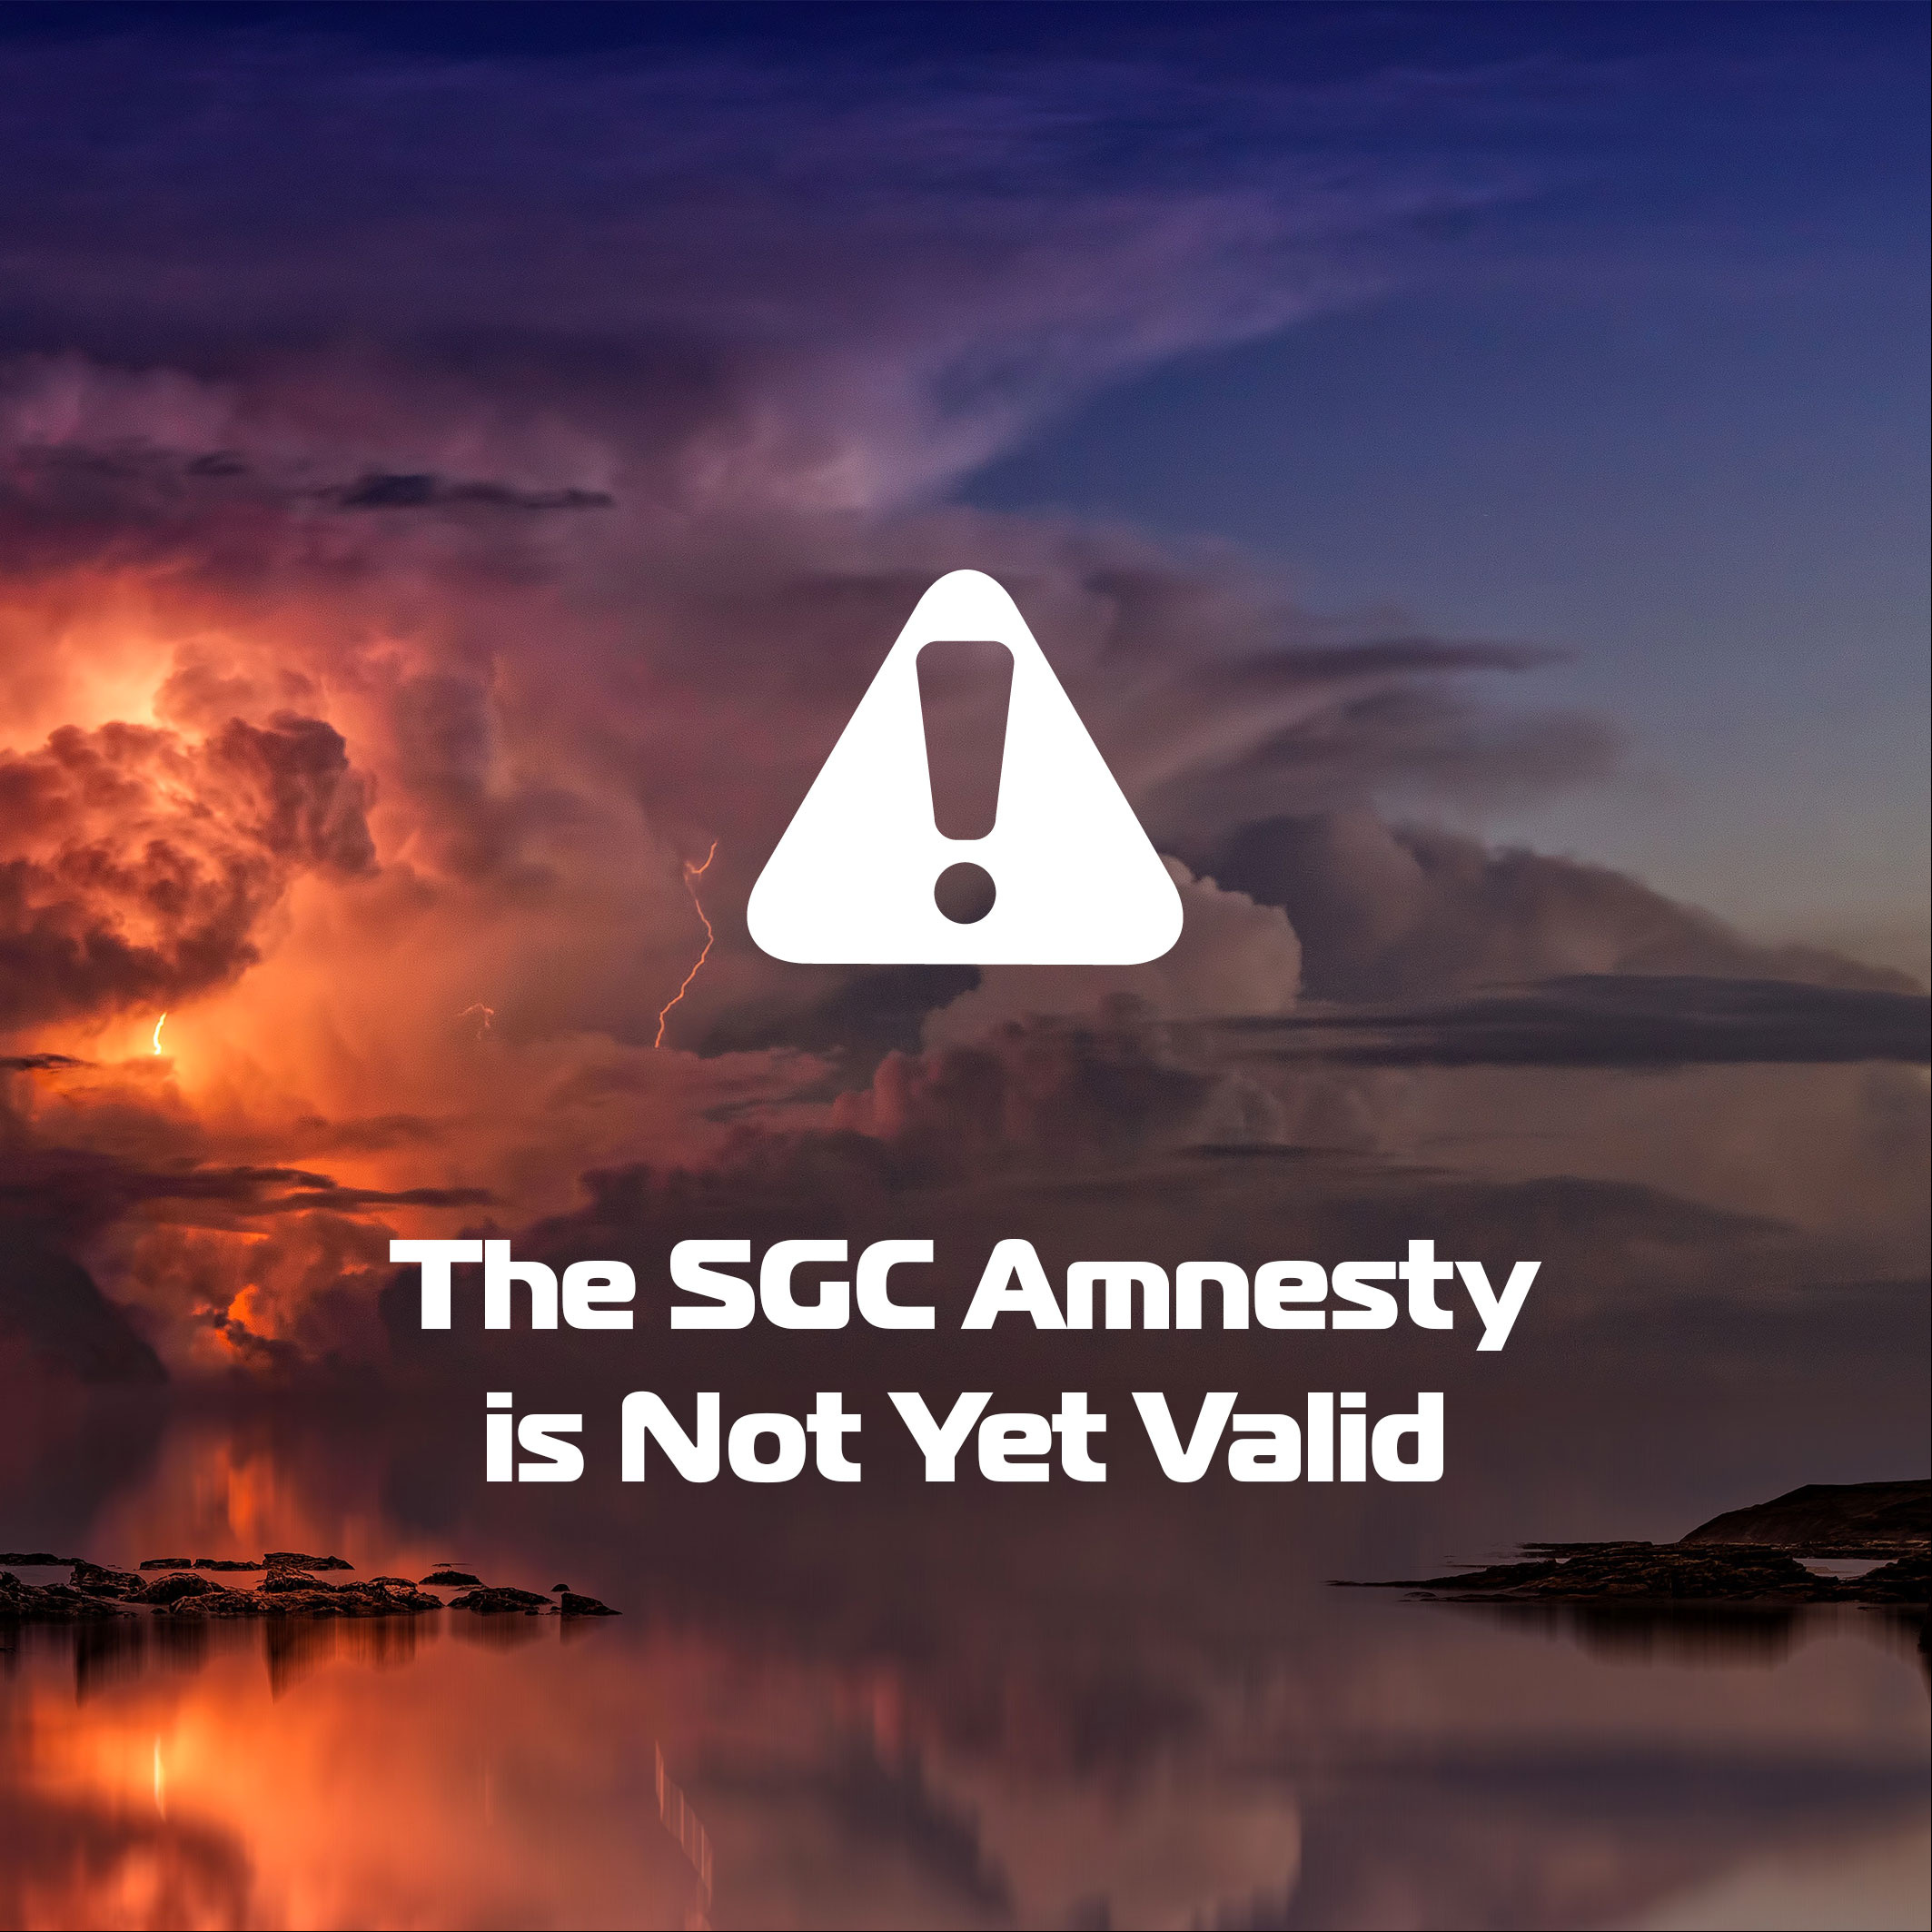 The SGC Amnesty is Not Yet Valid